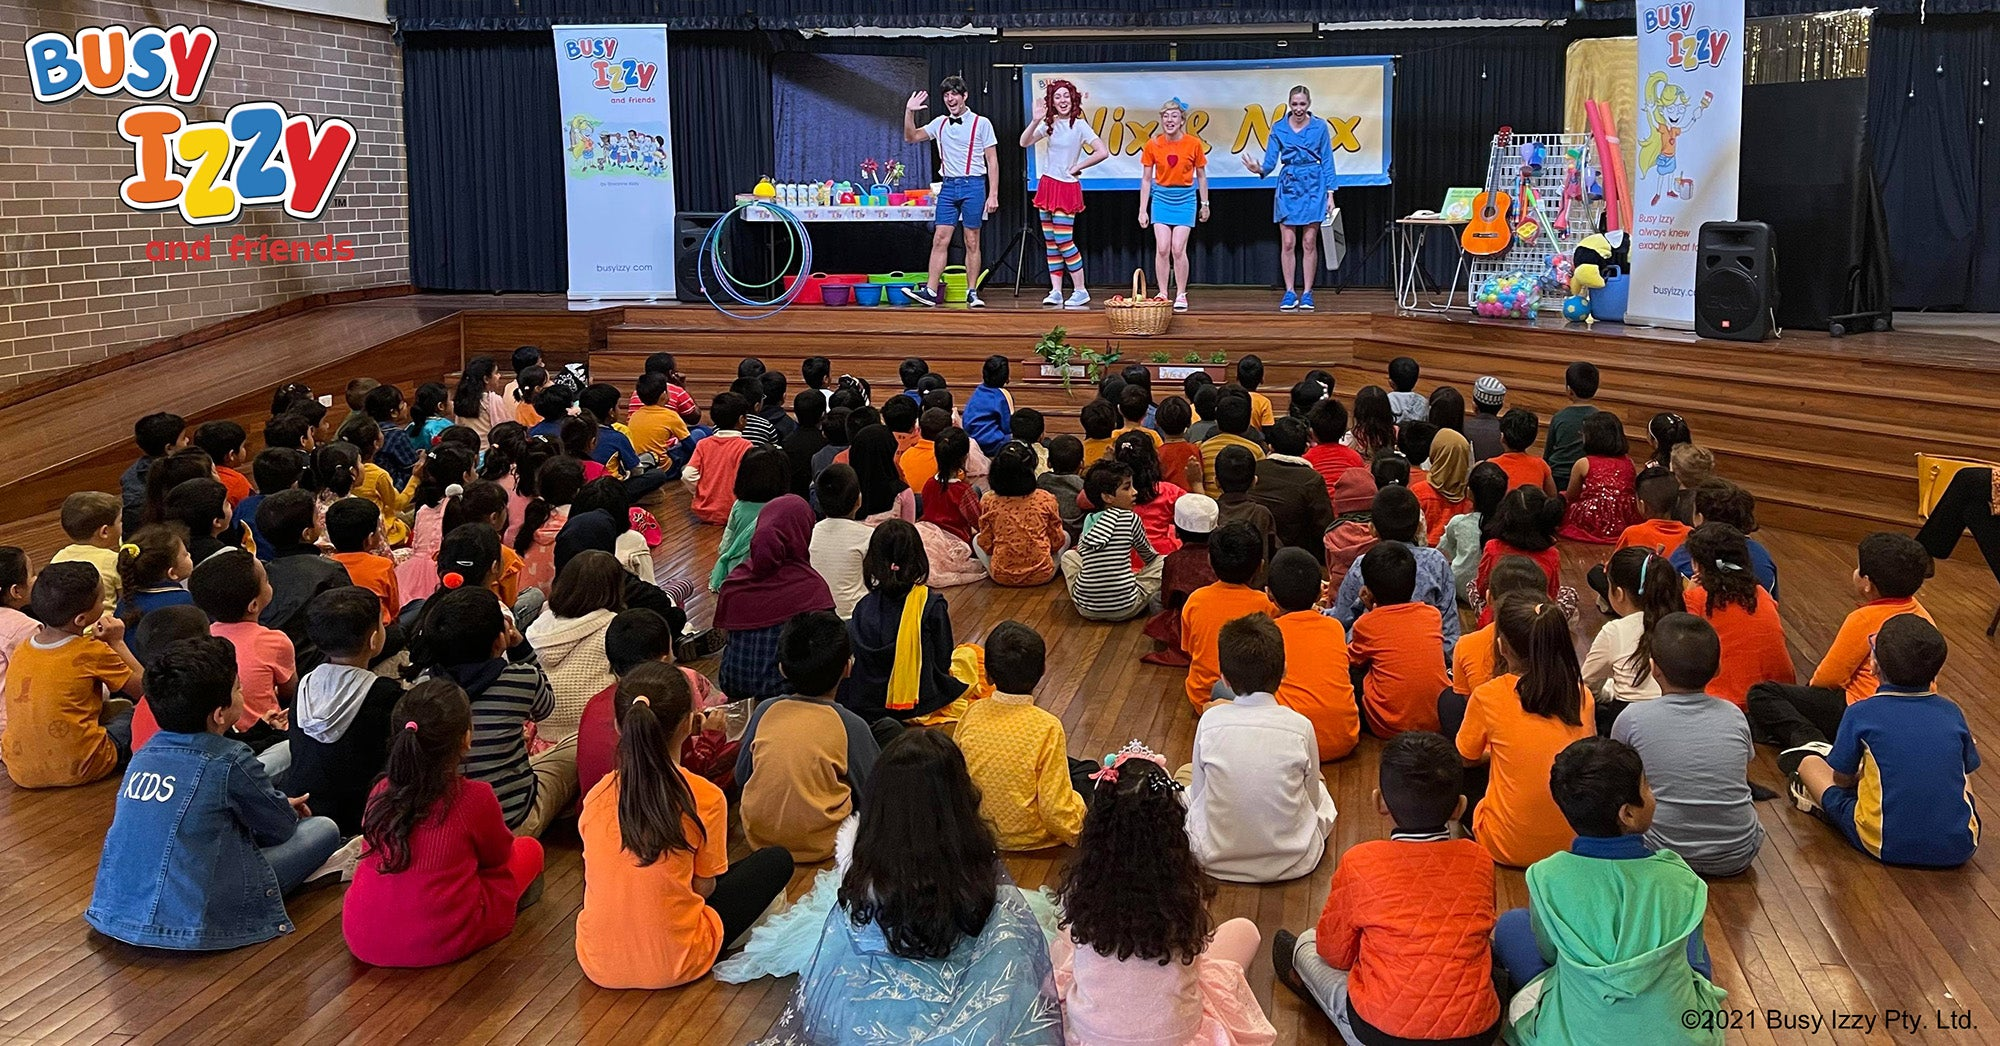 The Busy Izzy Show performers edutaining kids at a Sydney school.